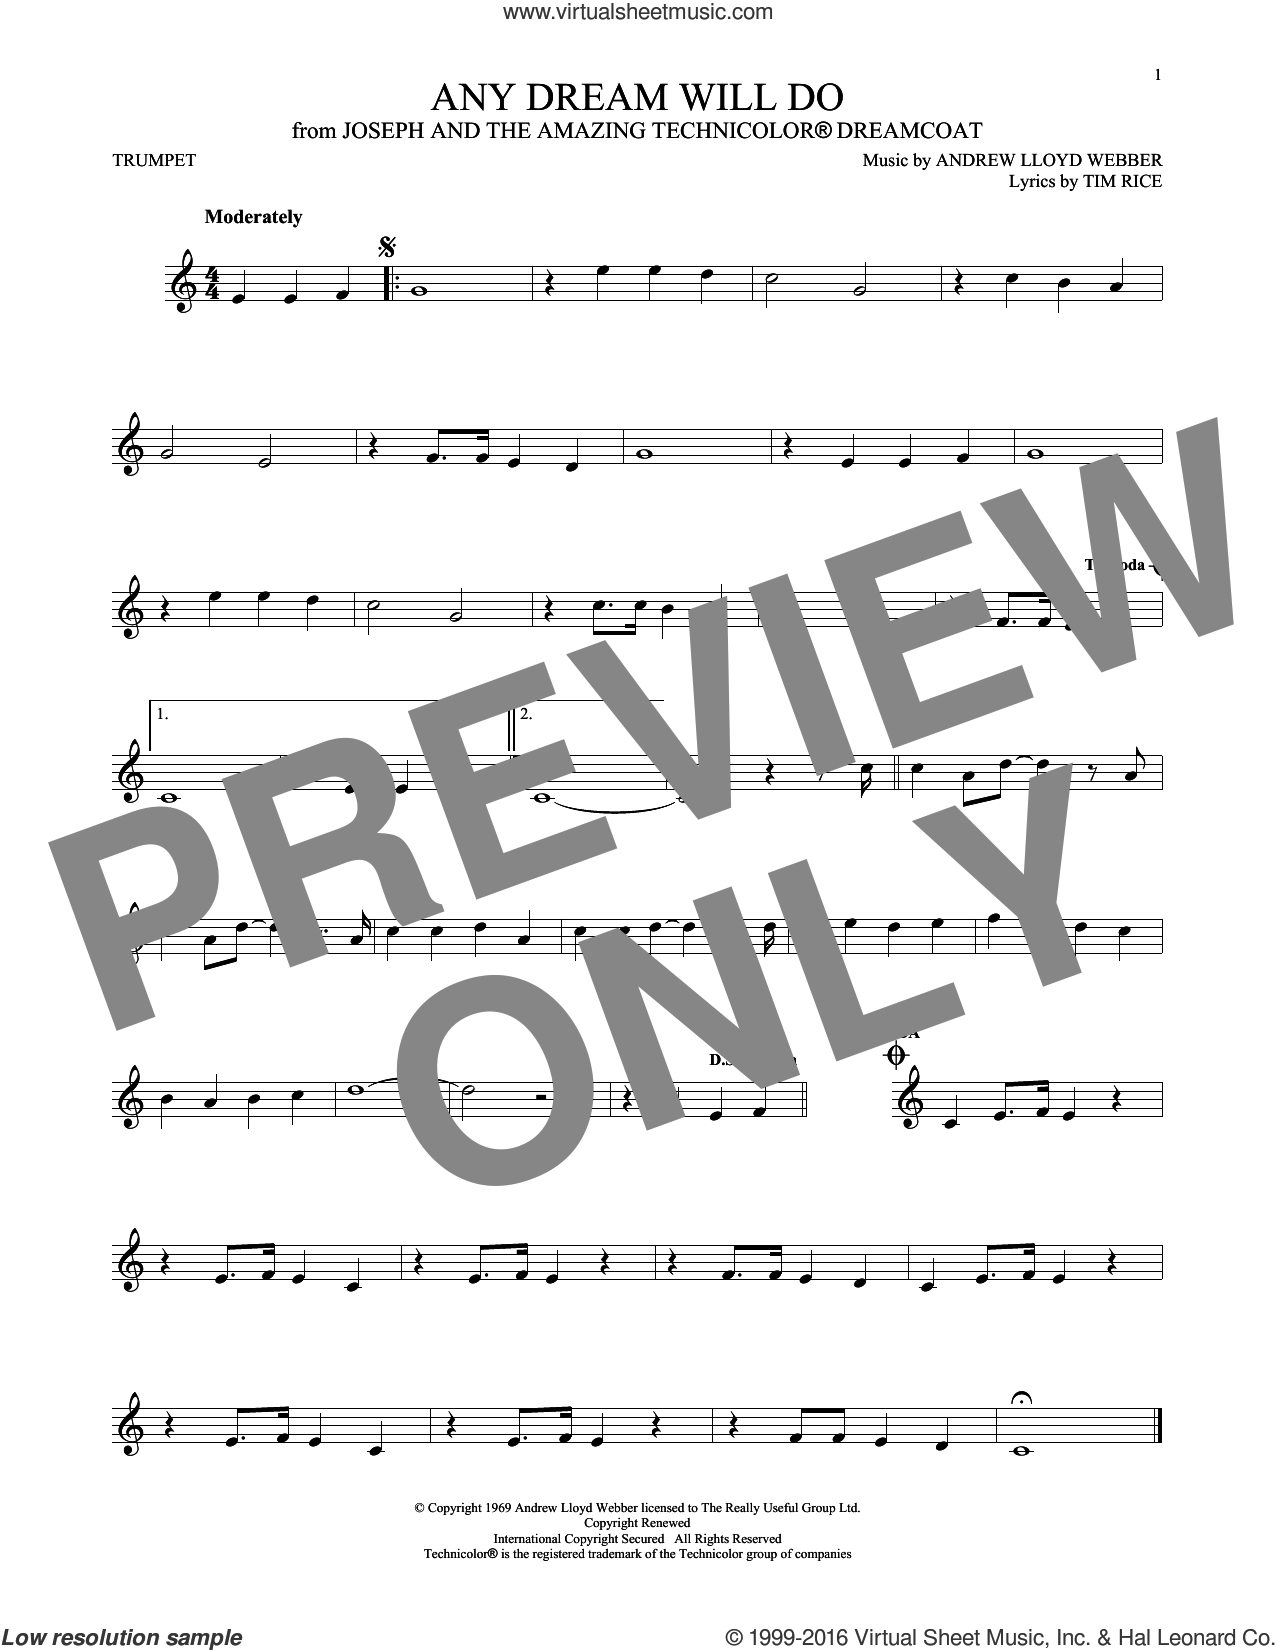 Any Dream Will Do sheet music for trumpet solo by Andrew Lloyd Webber, Andrew Lloyd Webber & Tim Rice and Tim Rice, intermediate skill level